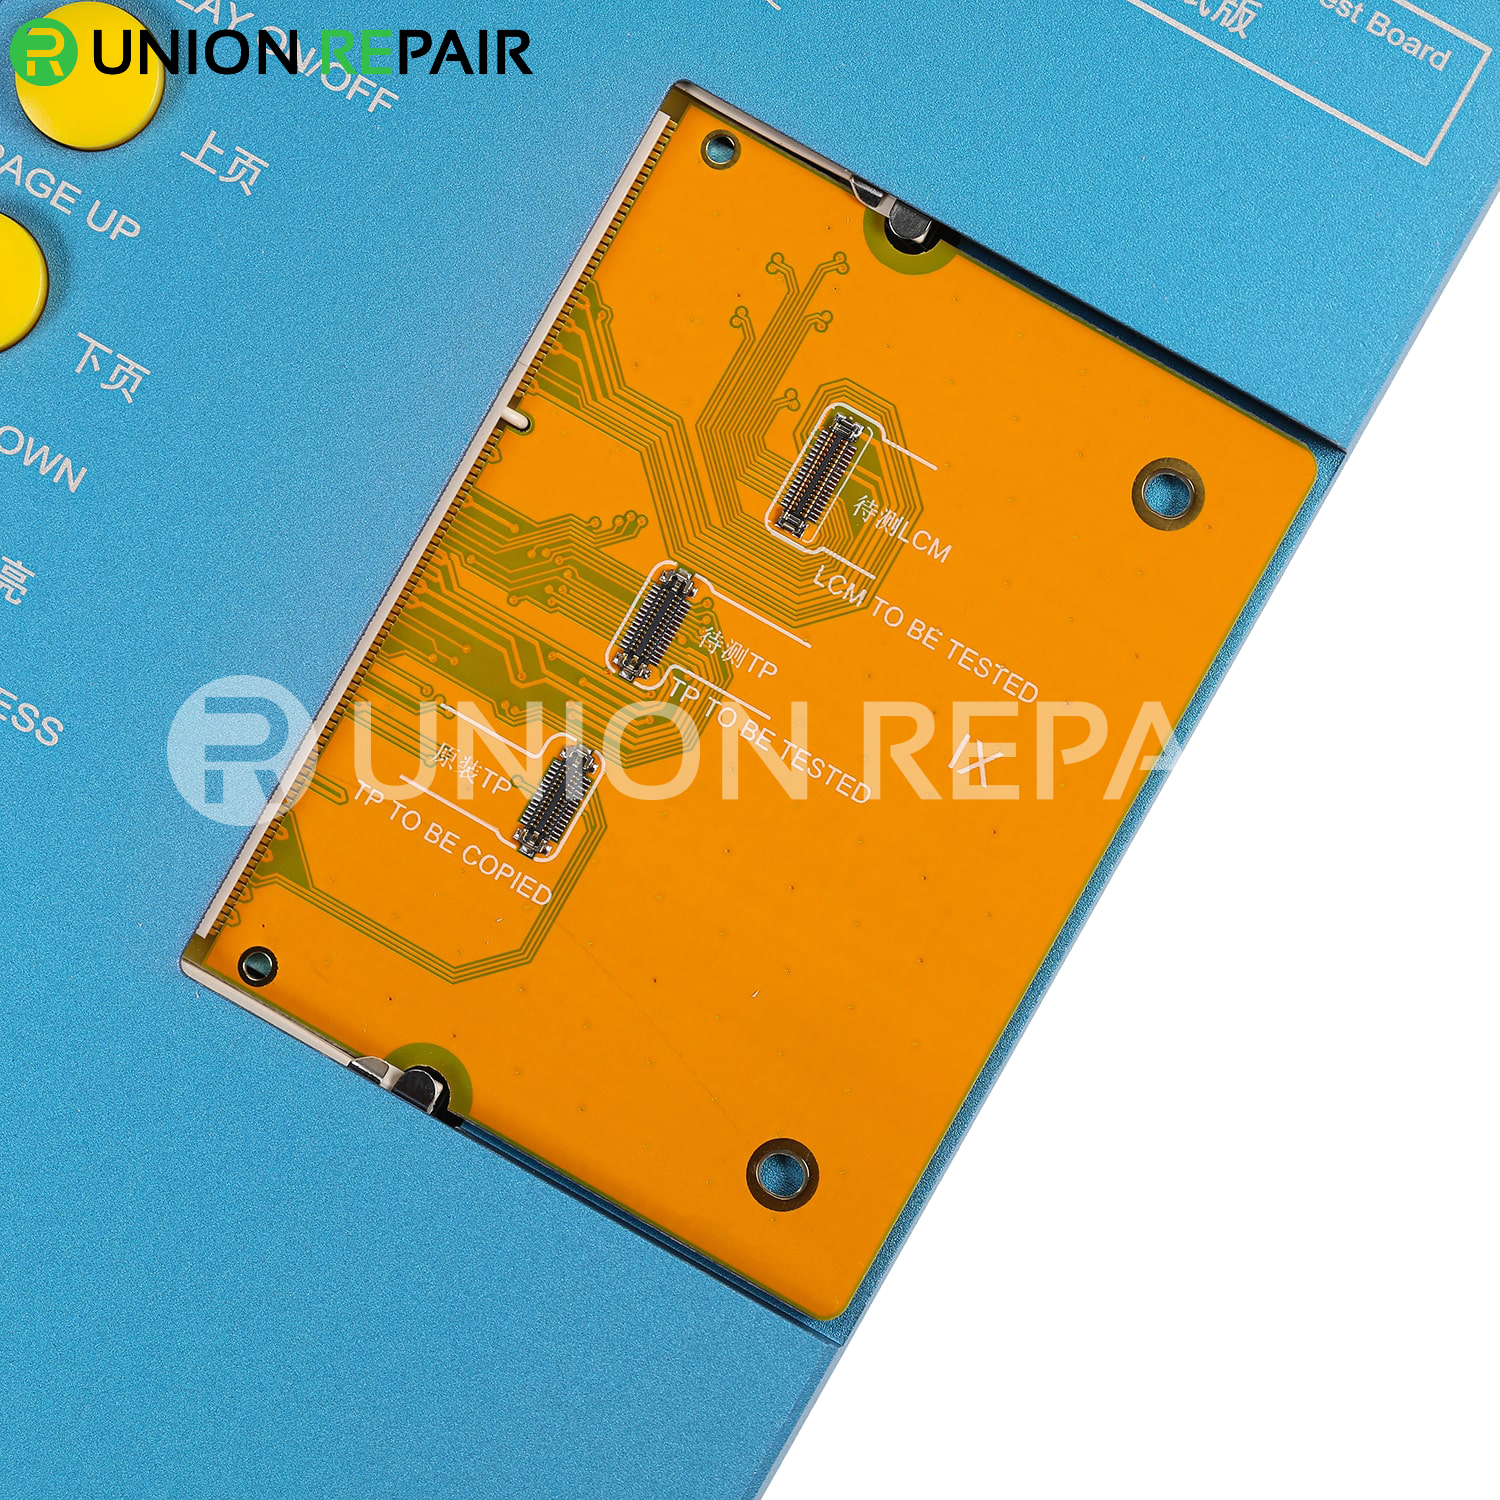 Intelligent Multifunctional Test Board for iPhone 7/7P/8/8P/X/XS/XSMAX